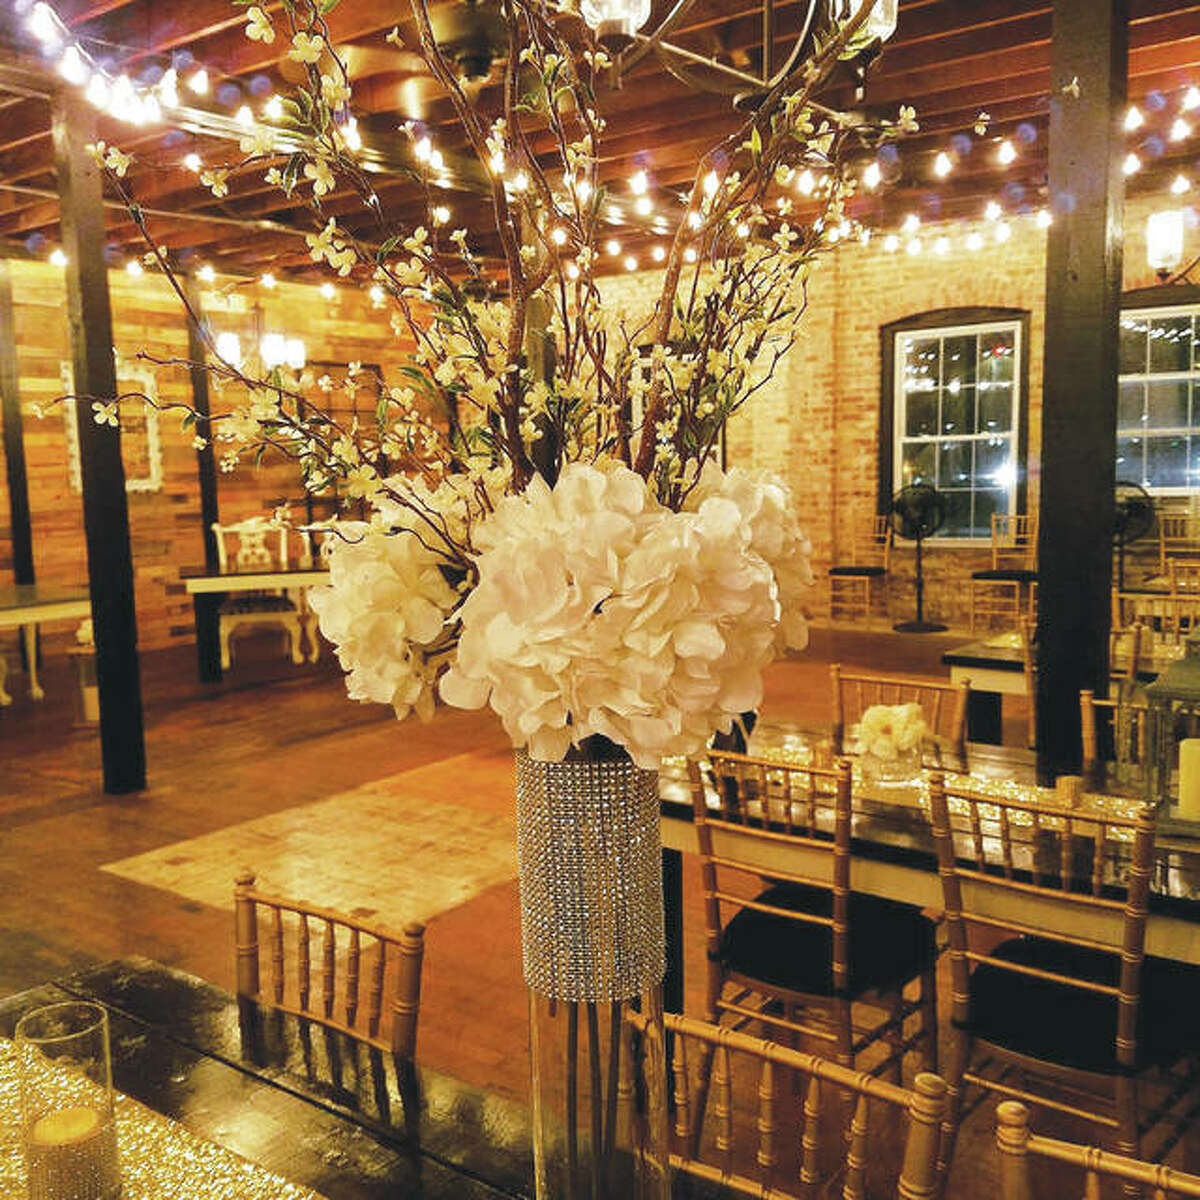 Clients who rent the event center can bring their own decorations, choose their own caterer or bring their own food.